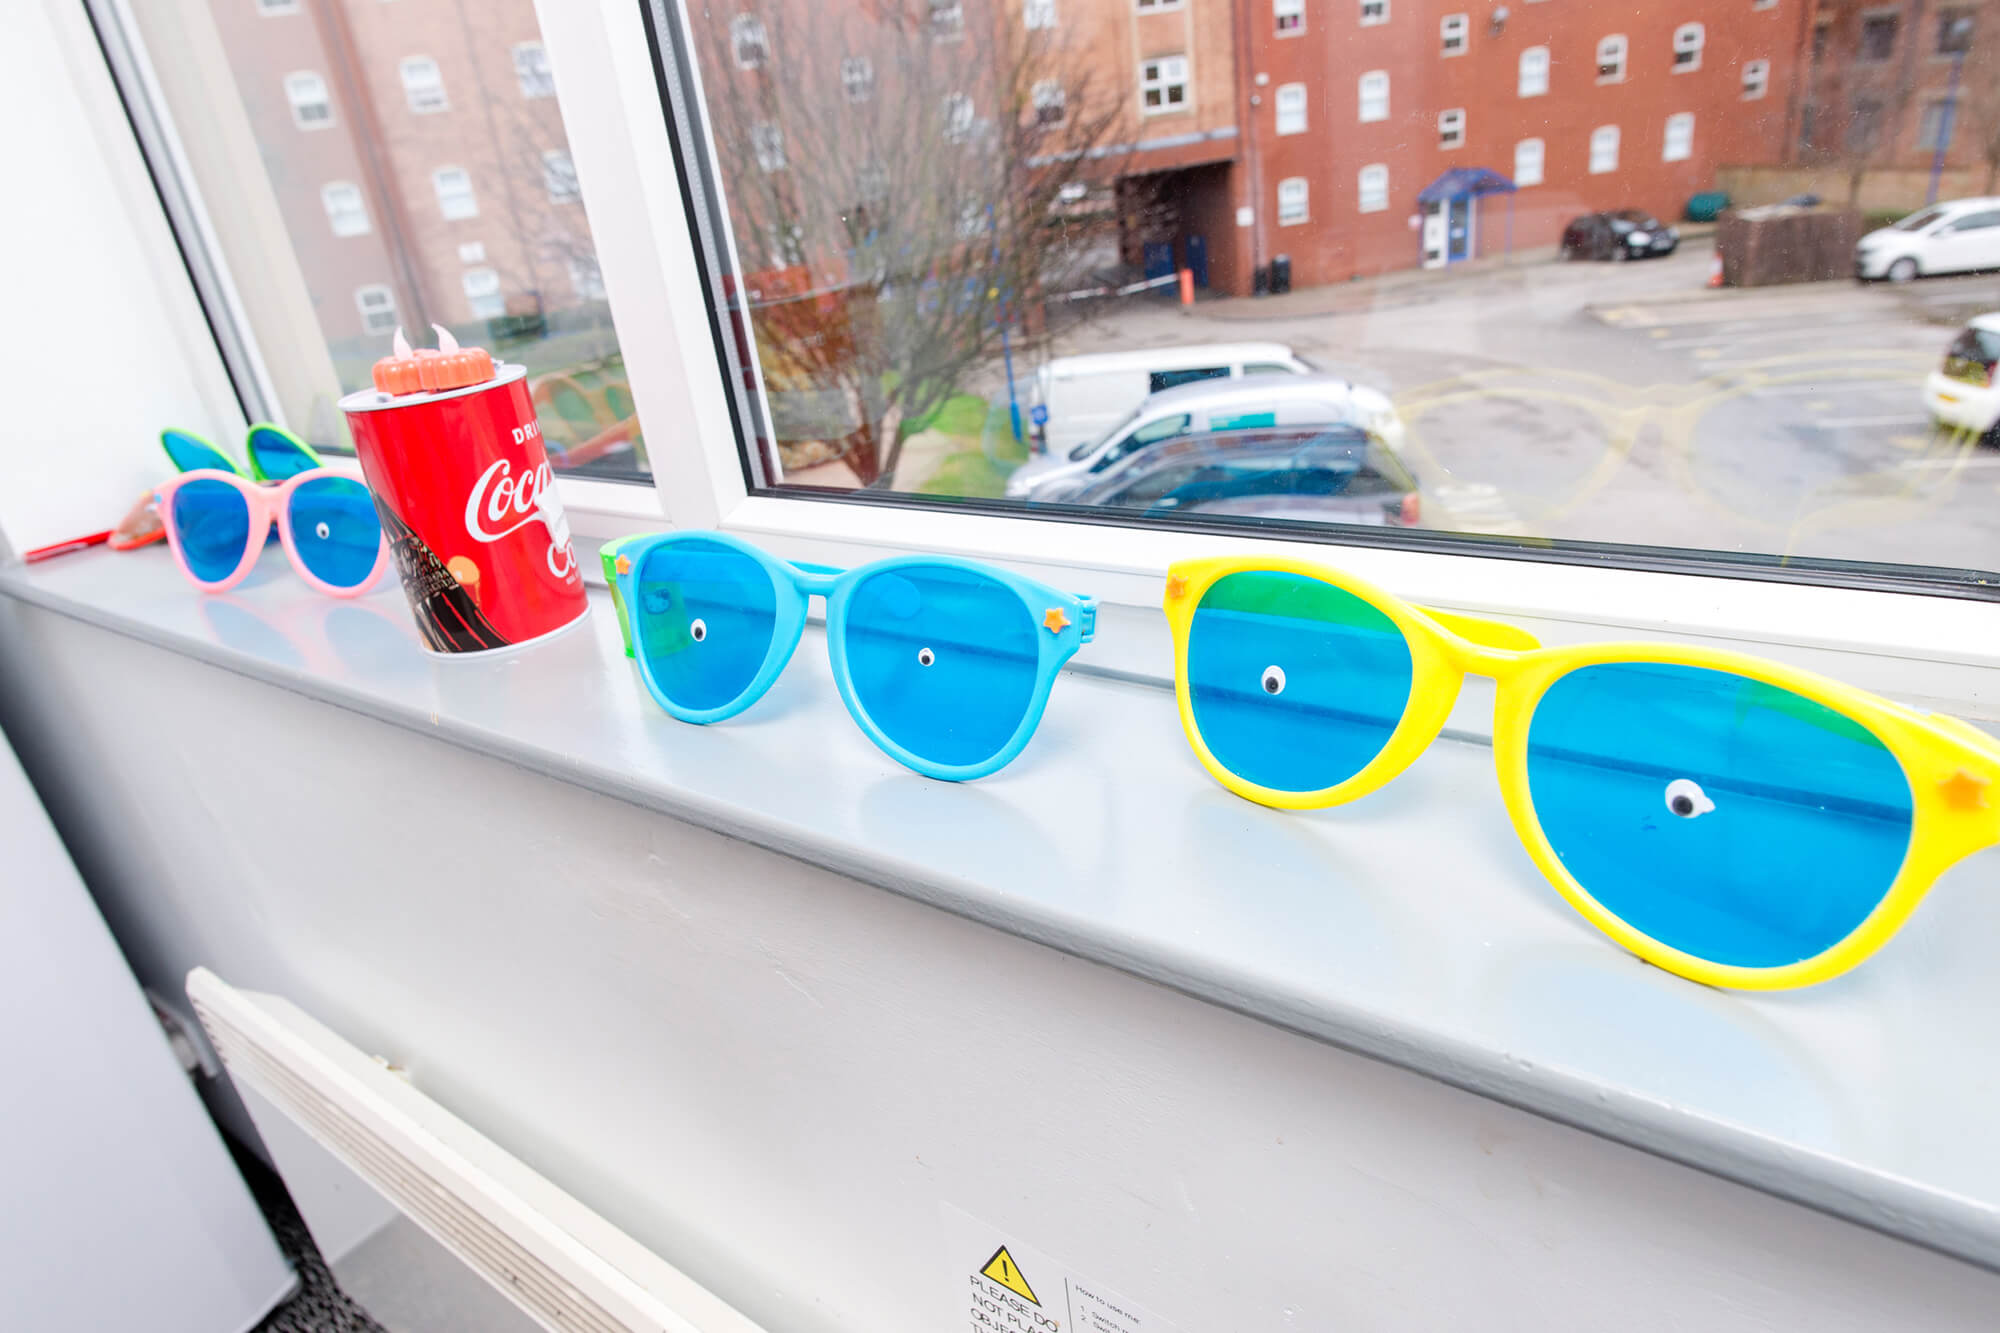 Plastic sunglasses with novelty eyes lined against a windowsill in student halls of residence.